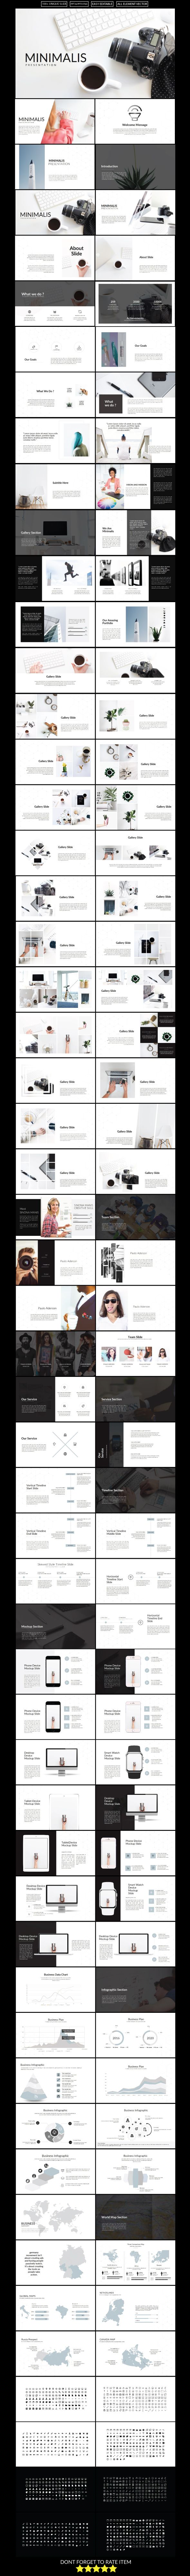 244 best presentations images on pinterest page layout layout main file images placeholder drag and drop image theme colour option easy to change colors fully editable text ph toneelgroepblik Gallery